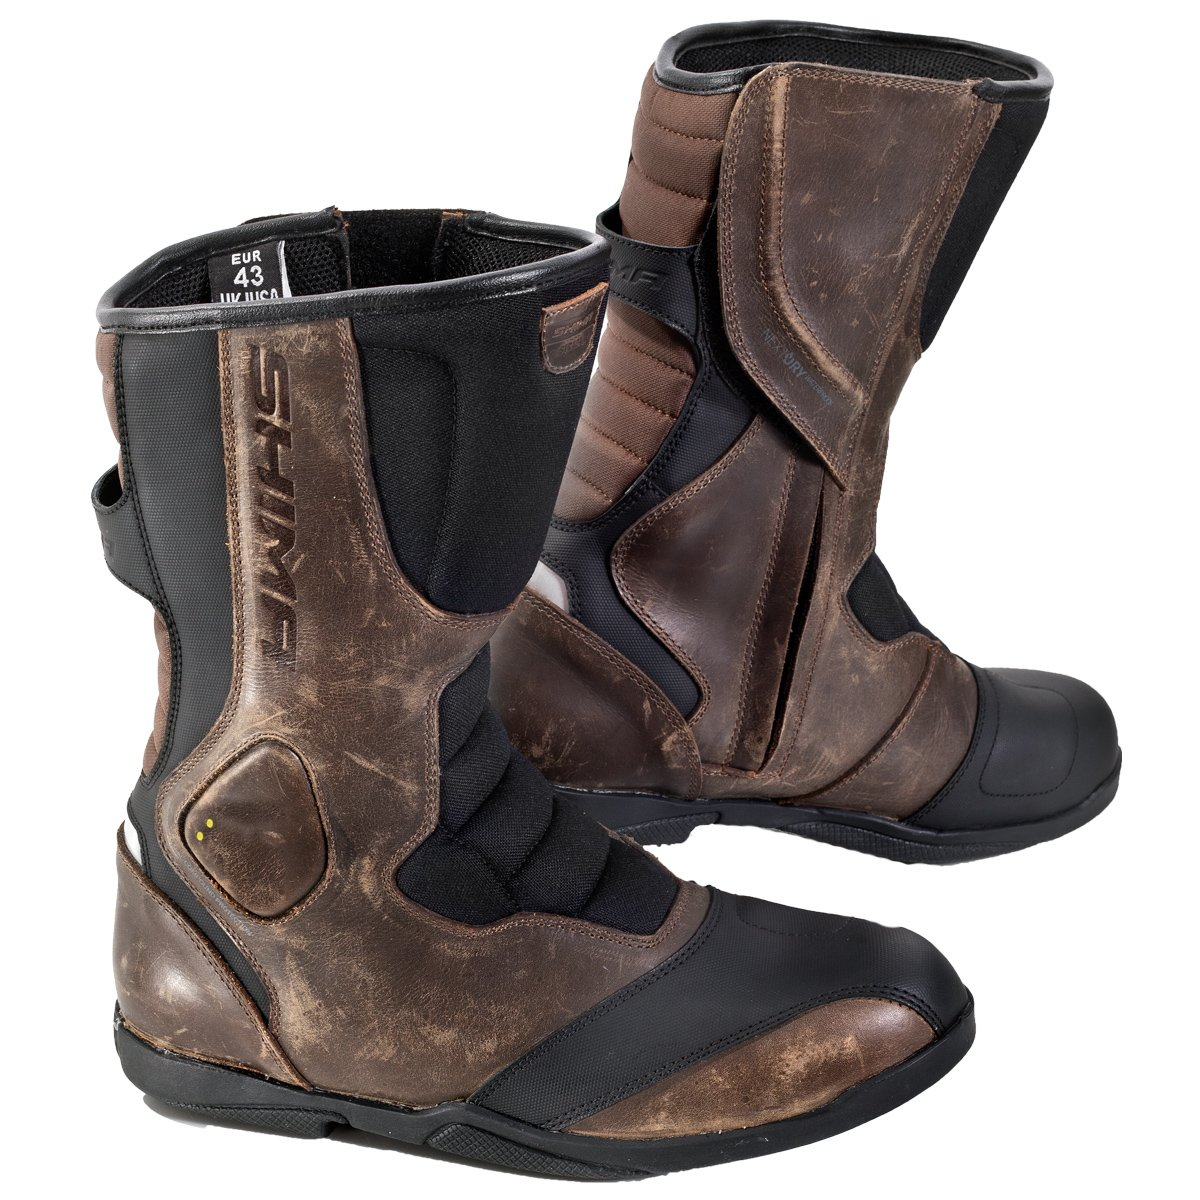 SHIMA STRADA VINTAGE, Classic Retro Sport Leather Motorcycle Boots (43, Brown) by SHIMA